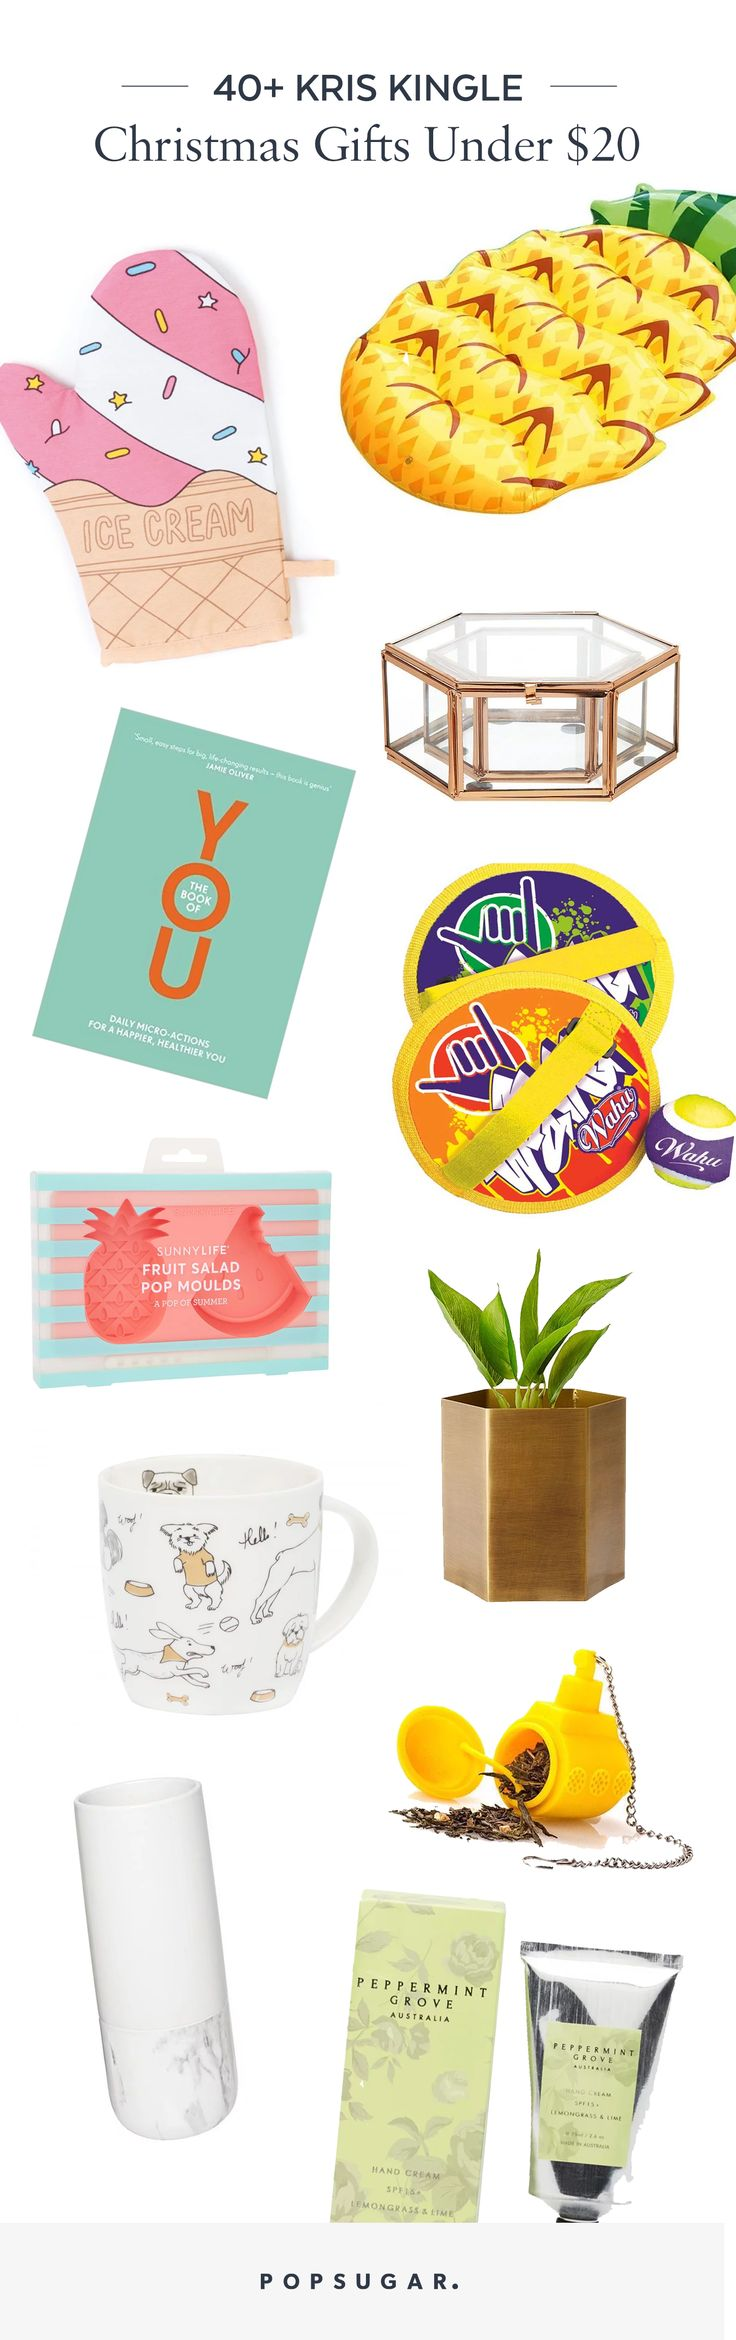 Popsugar Christmas Kris Kingle Gift Gift Present Ideas Under $20